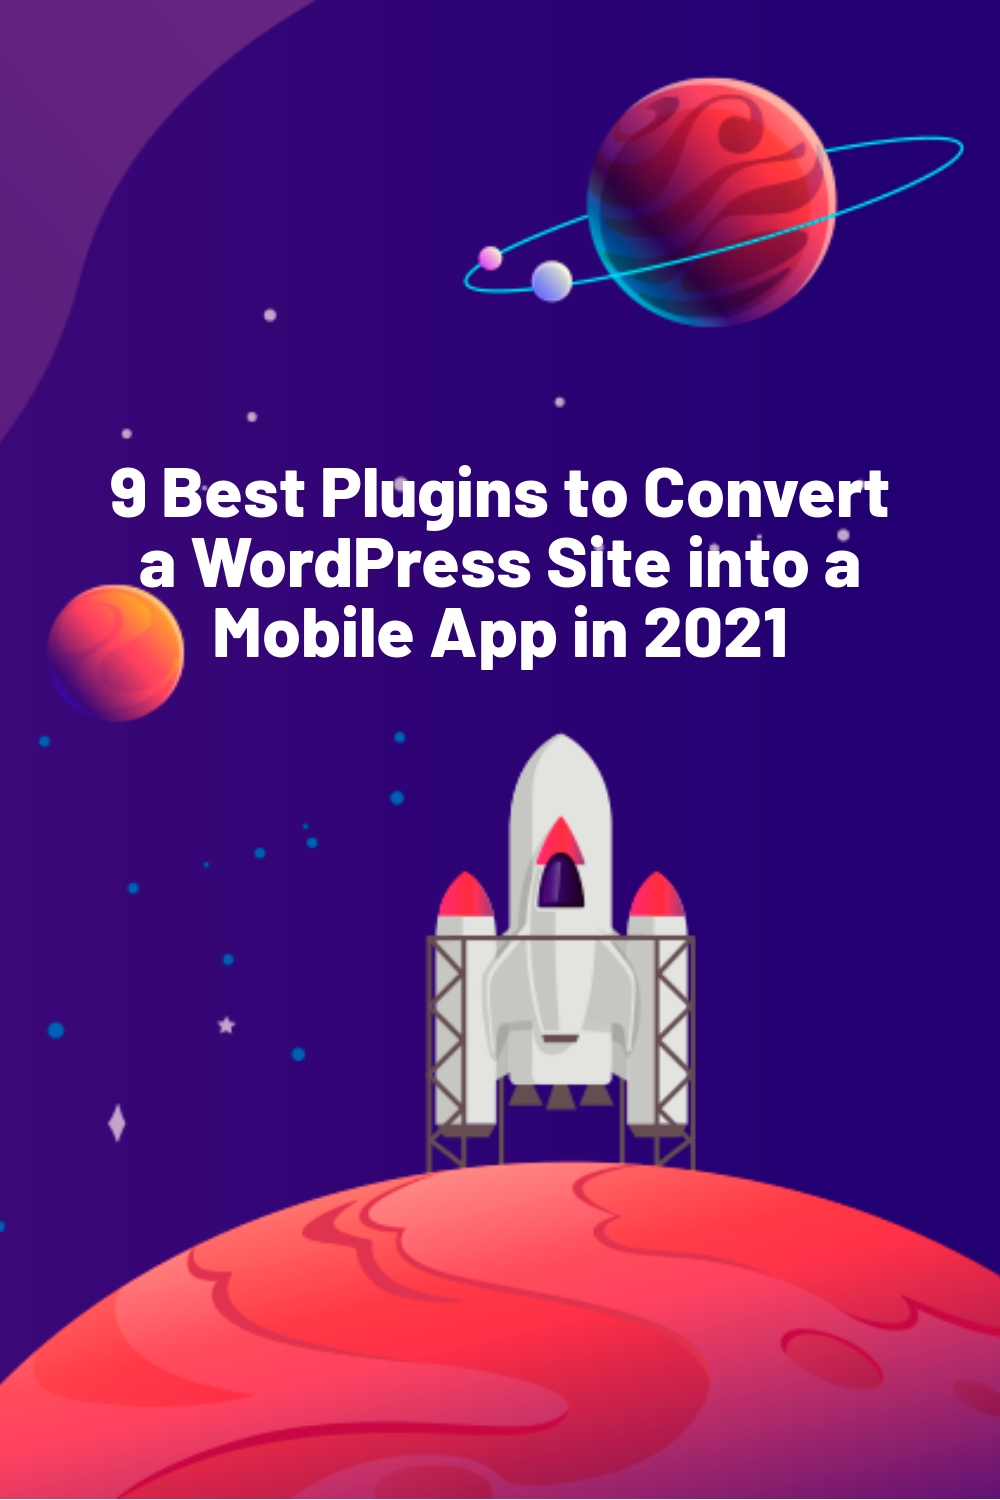 9 Best Plugins to Convert a WordPress Site into a Mobile App in 2021